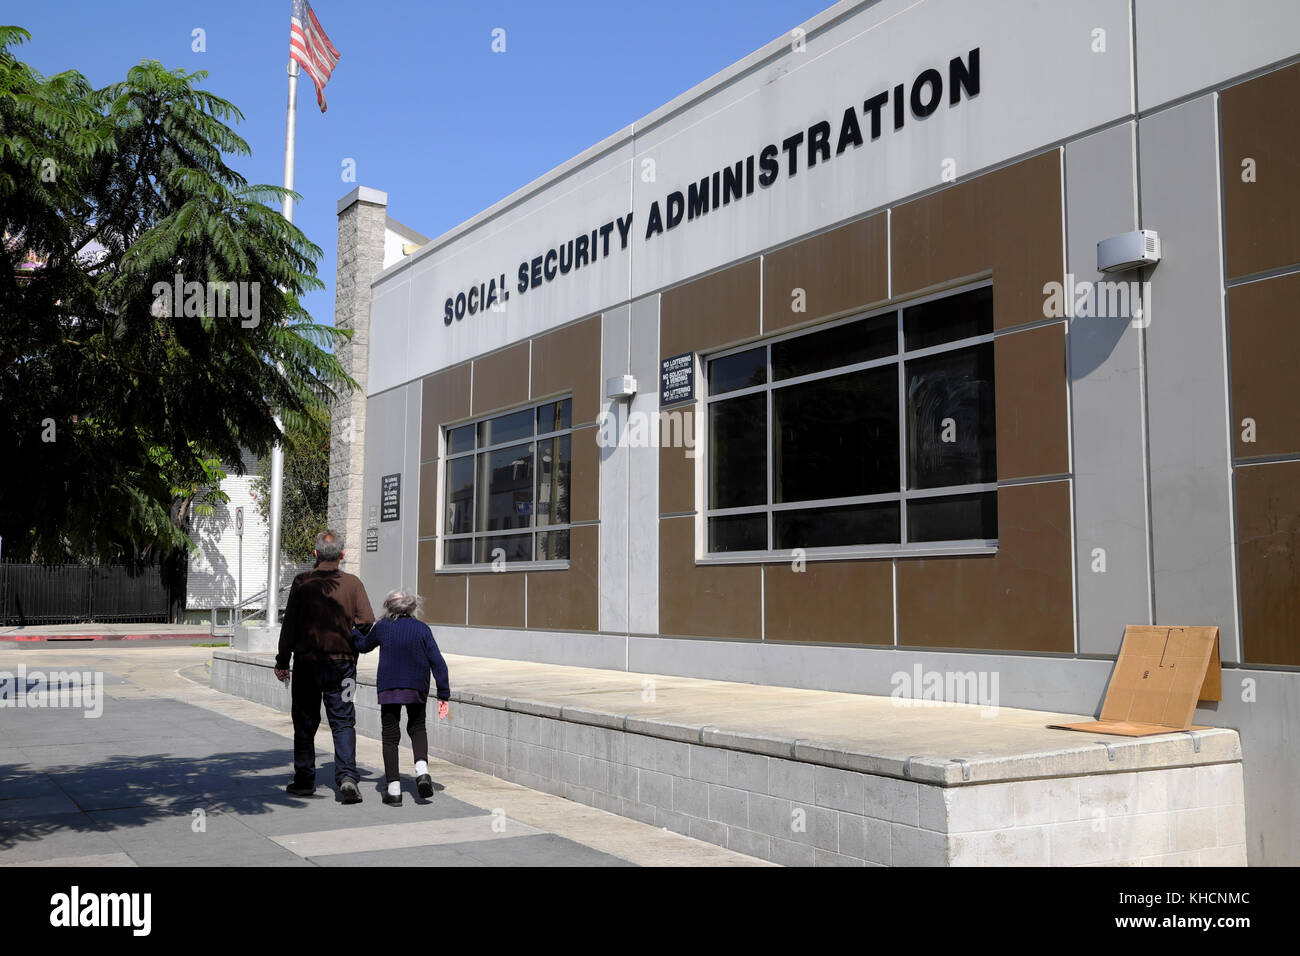 Social security miami gardens office garden ftempo - Social security office miami gardens ...